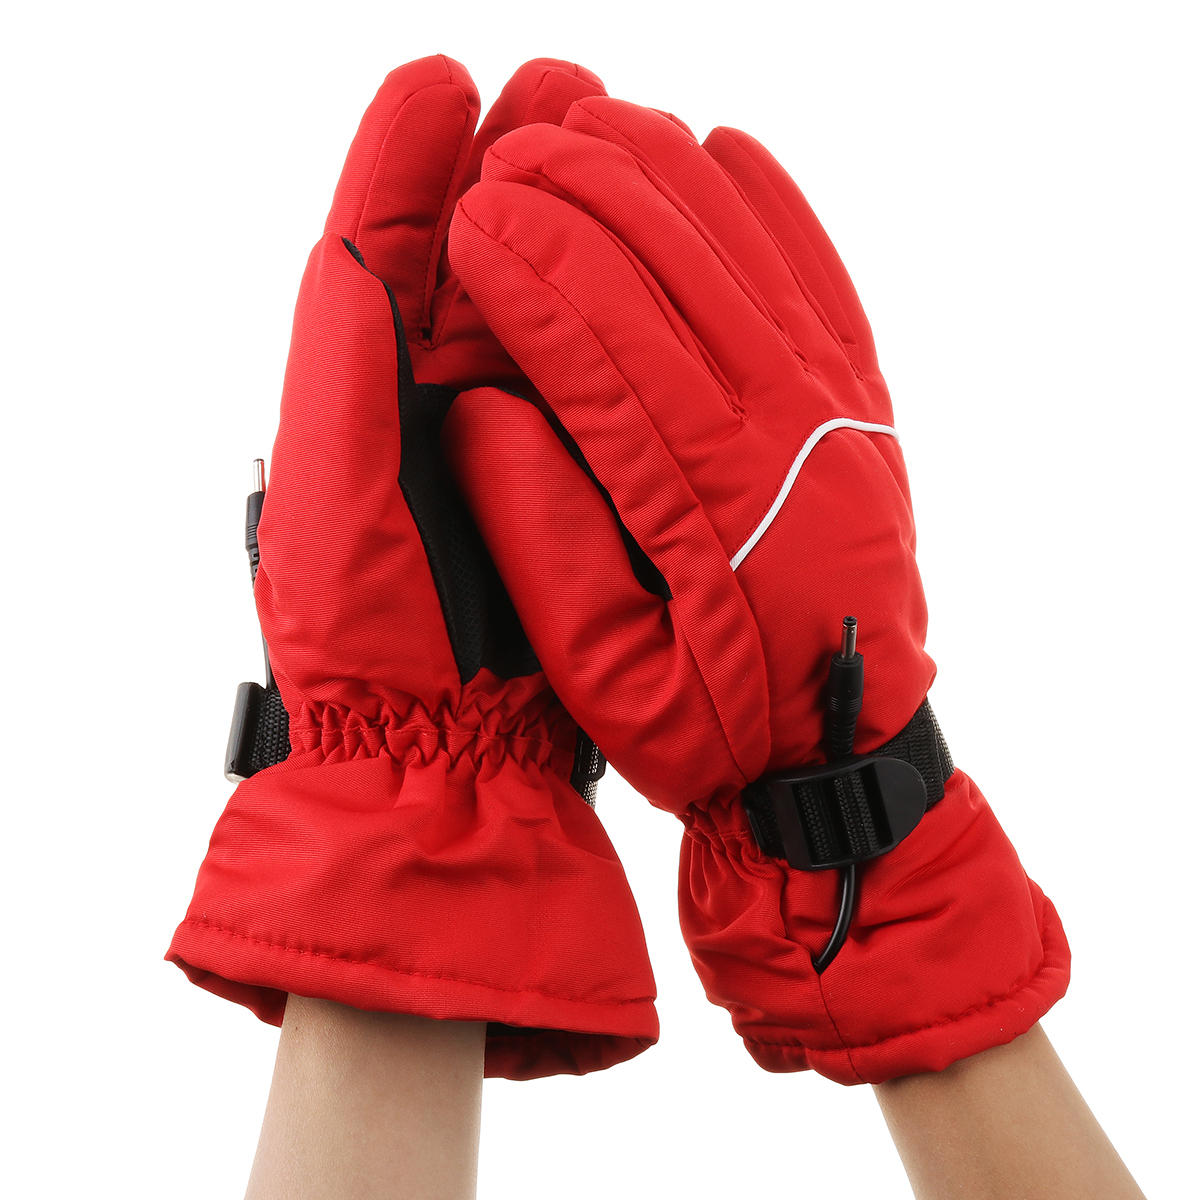 36V-96V Motorcycle Electric Heated Gloves Winter Warm Thermal Hand Warmer Tricylce Scooter Outdoor